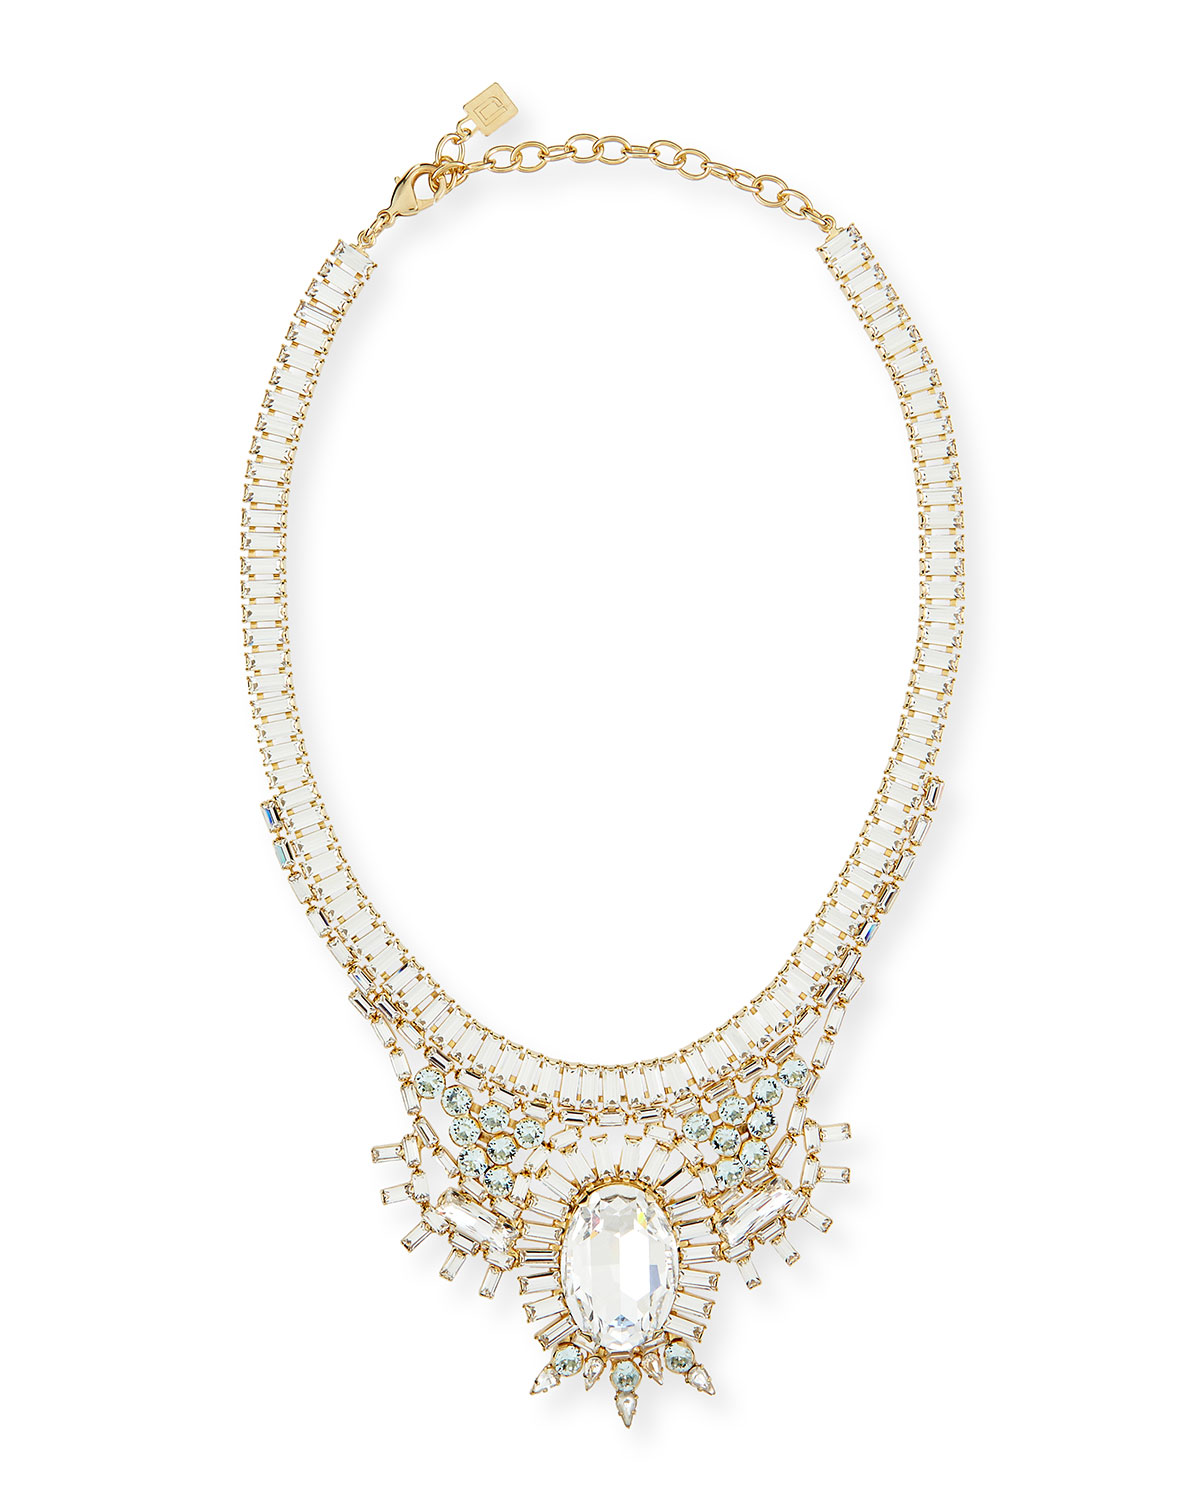 Dannijo Bodi Crystal Statement Necklace, GOLD